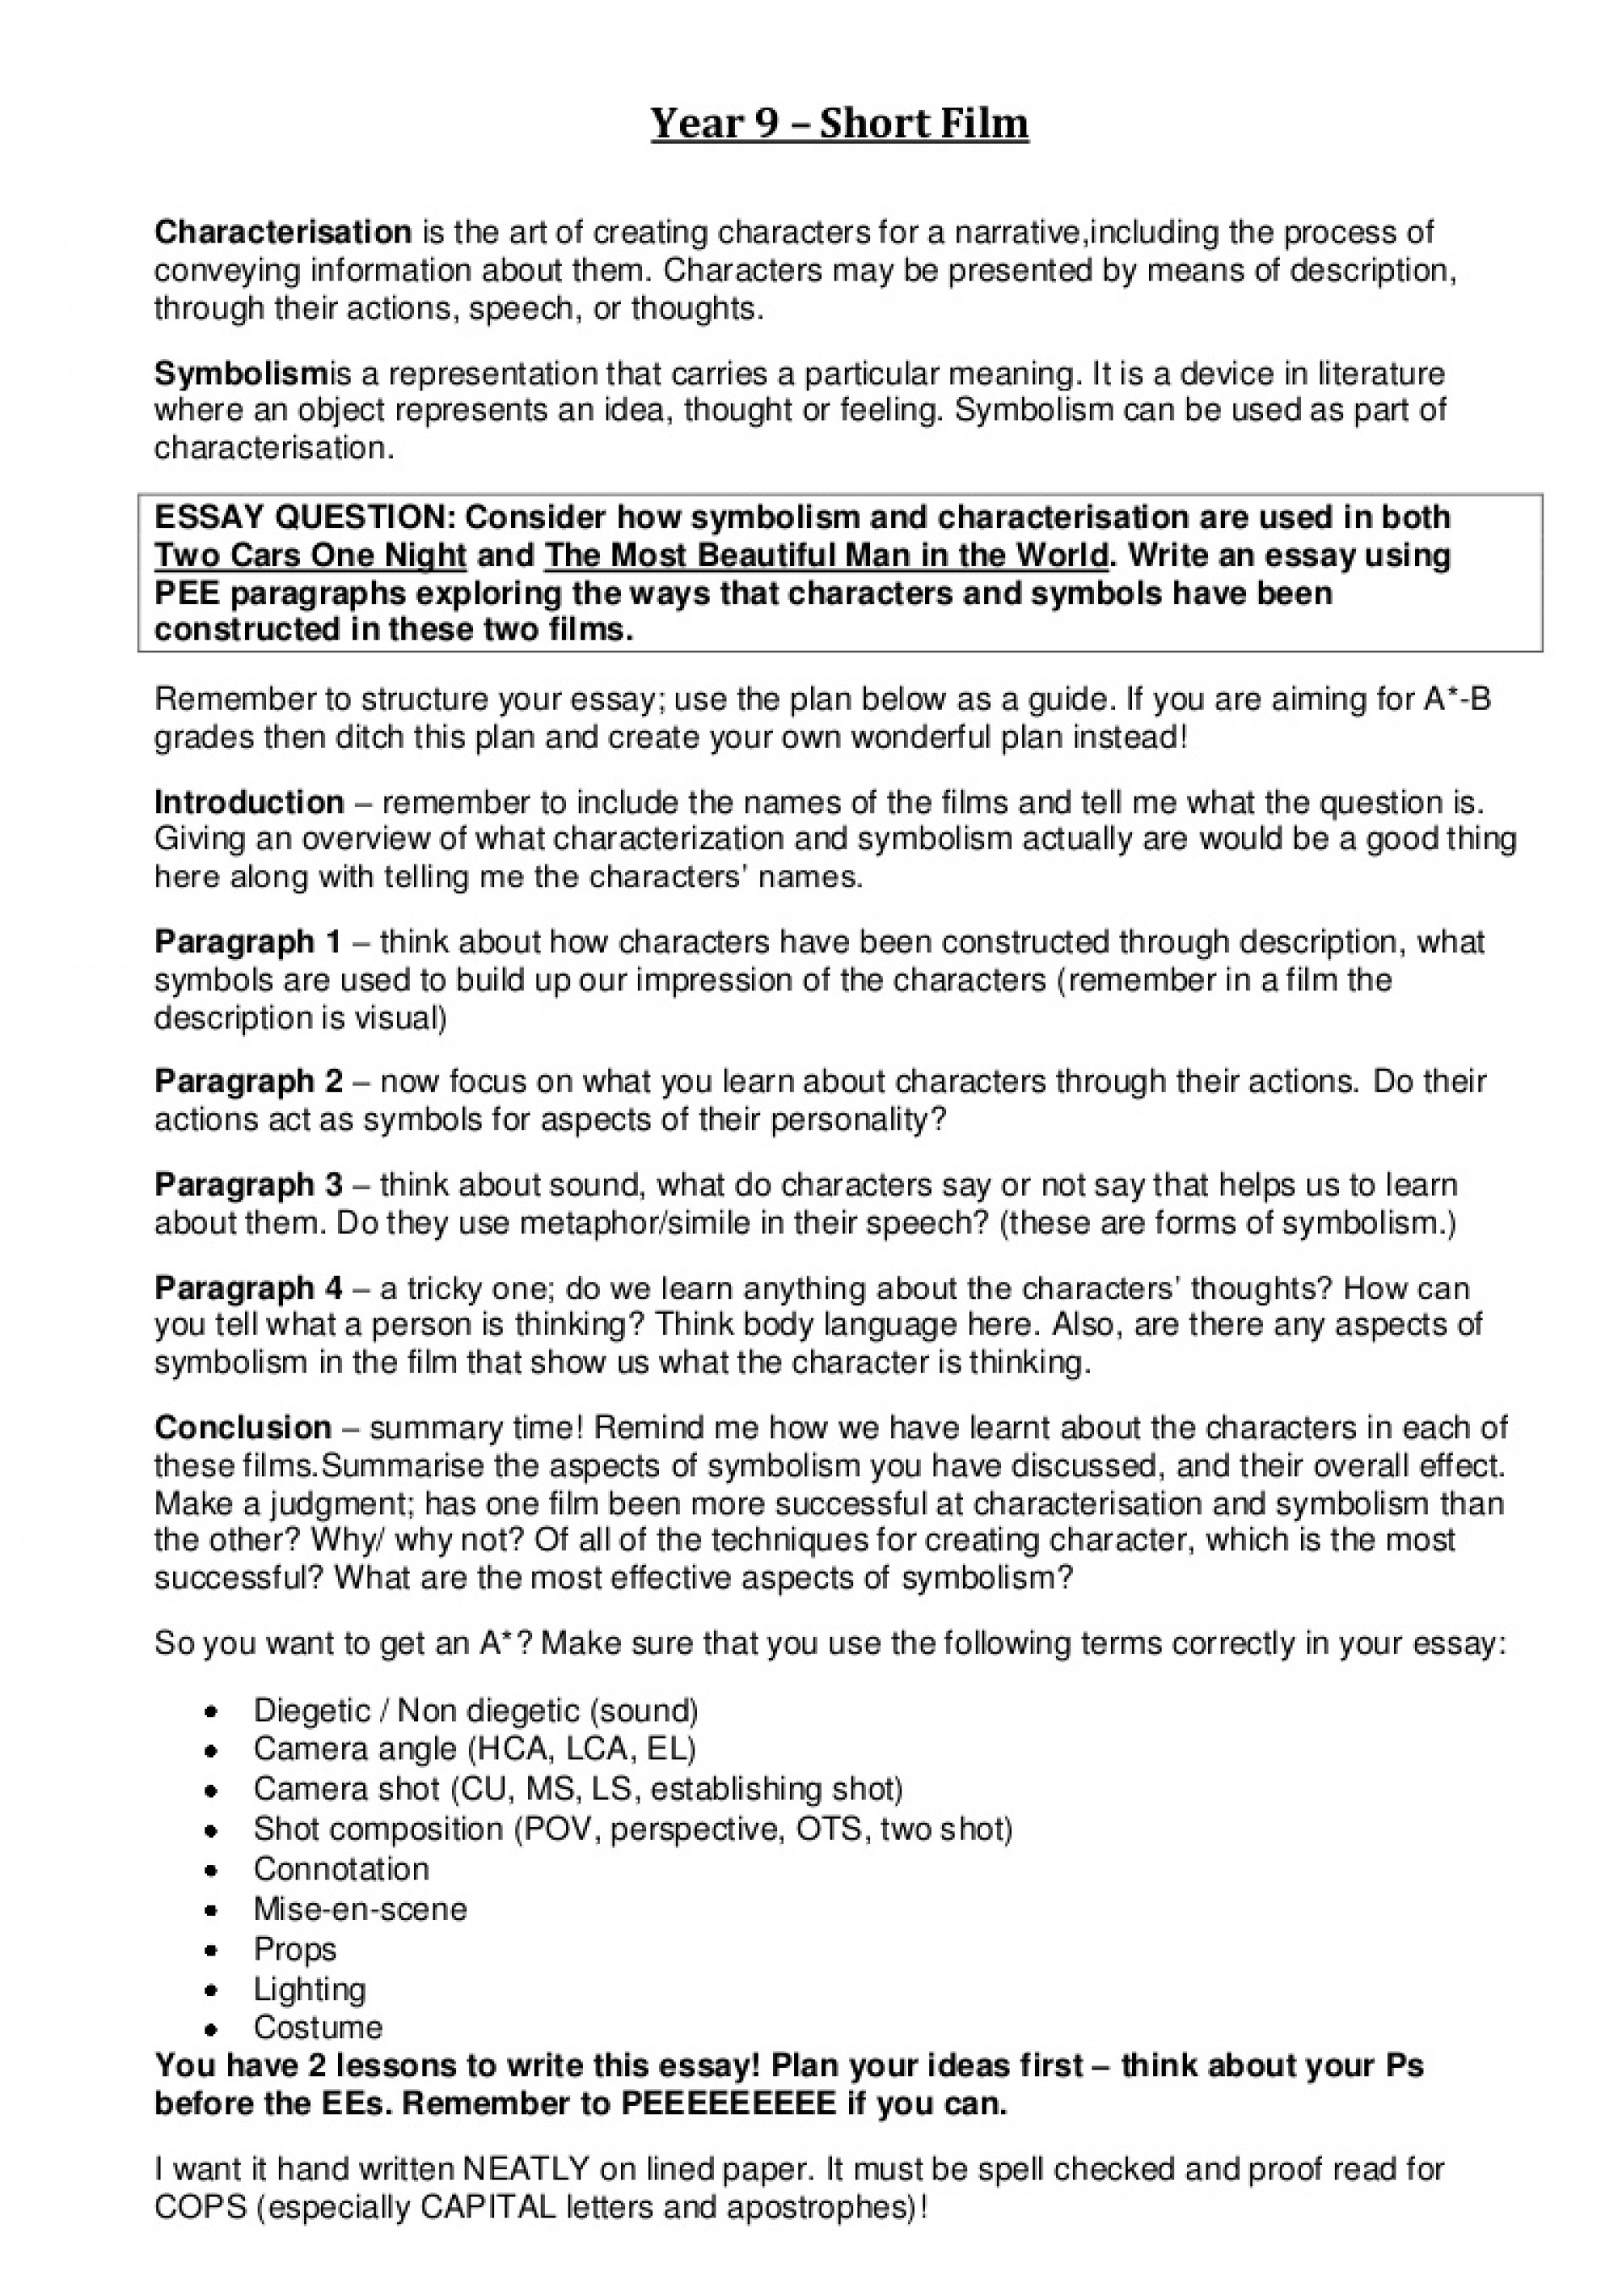 004 Essay Example Topics For Year Year9shortfilm Chracterisationsymbolismessay Phpapp02 Thumbnail Archaicawful 9 Questions Grade Olds Igcse 1920